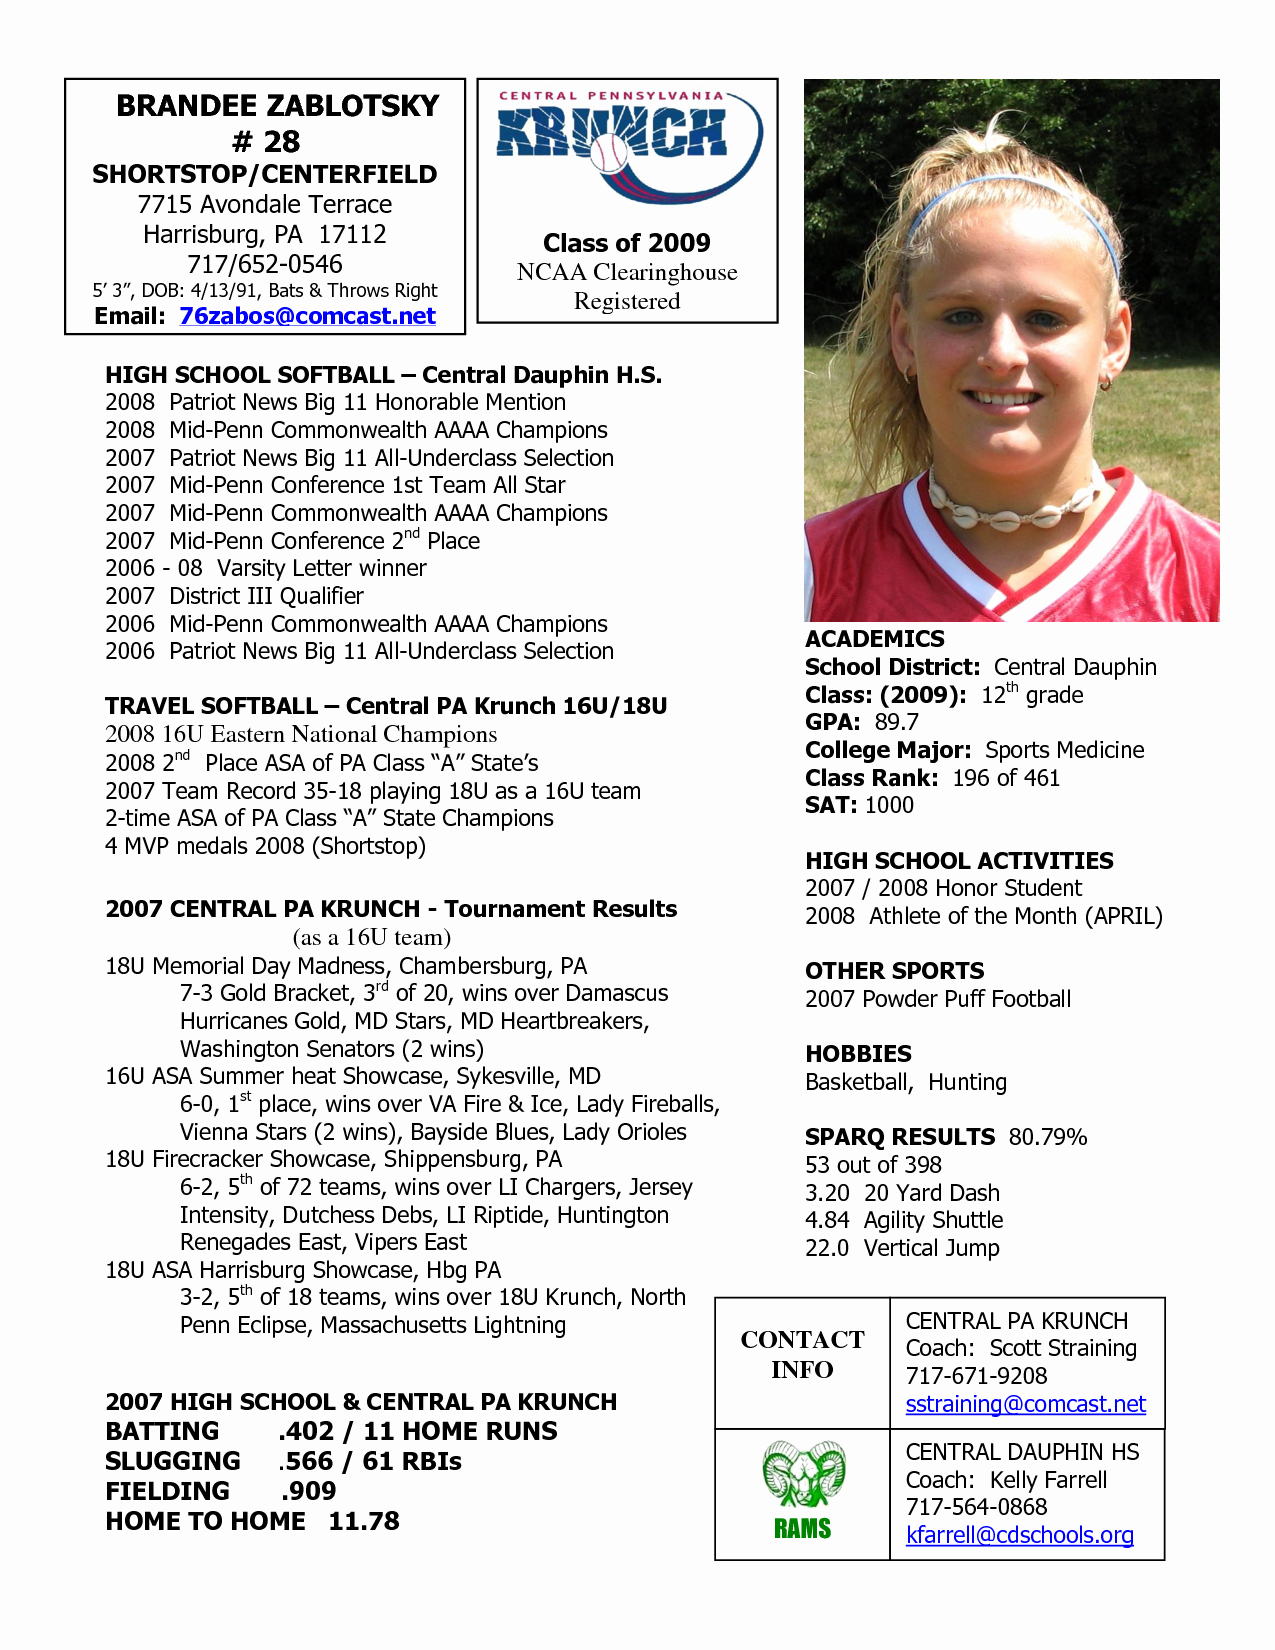 Football Player Profile Template Luxury softball Profile Sample